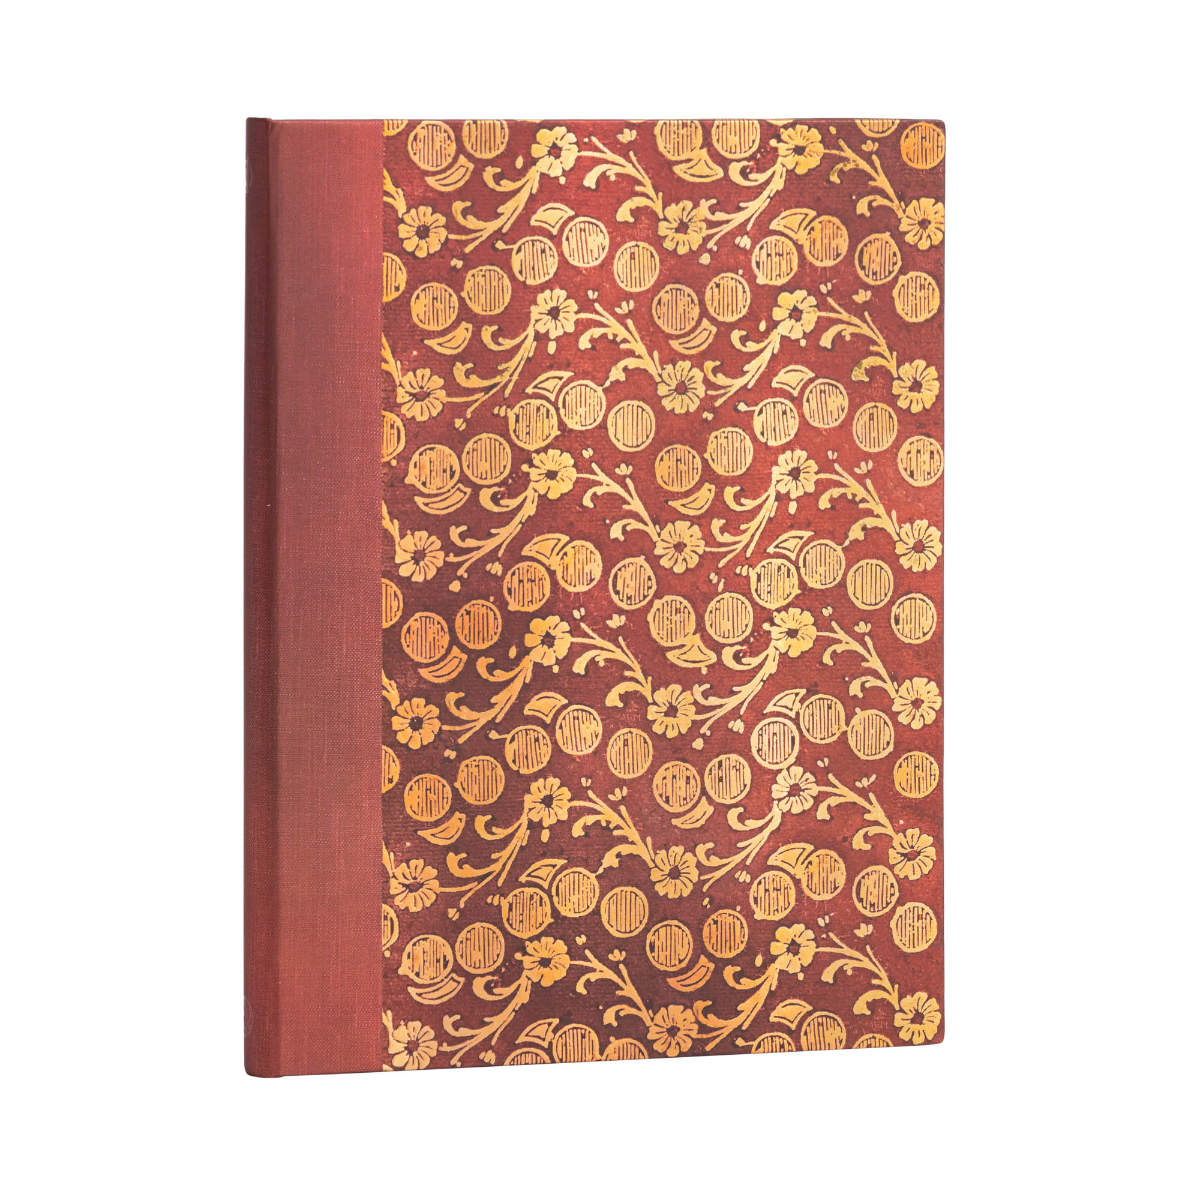 Paperblanks Virginia Woolf's The Waves 7x9 Ultra Notebook